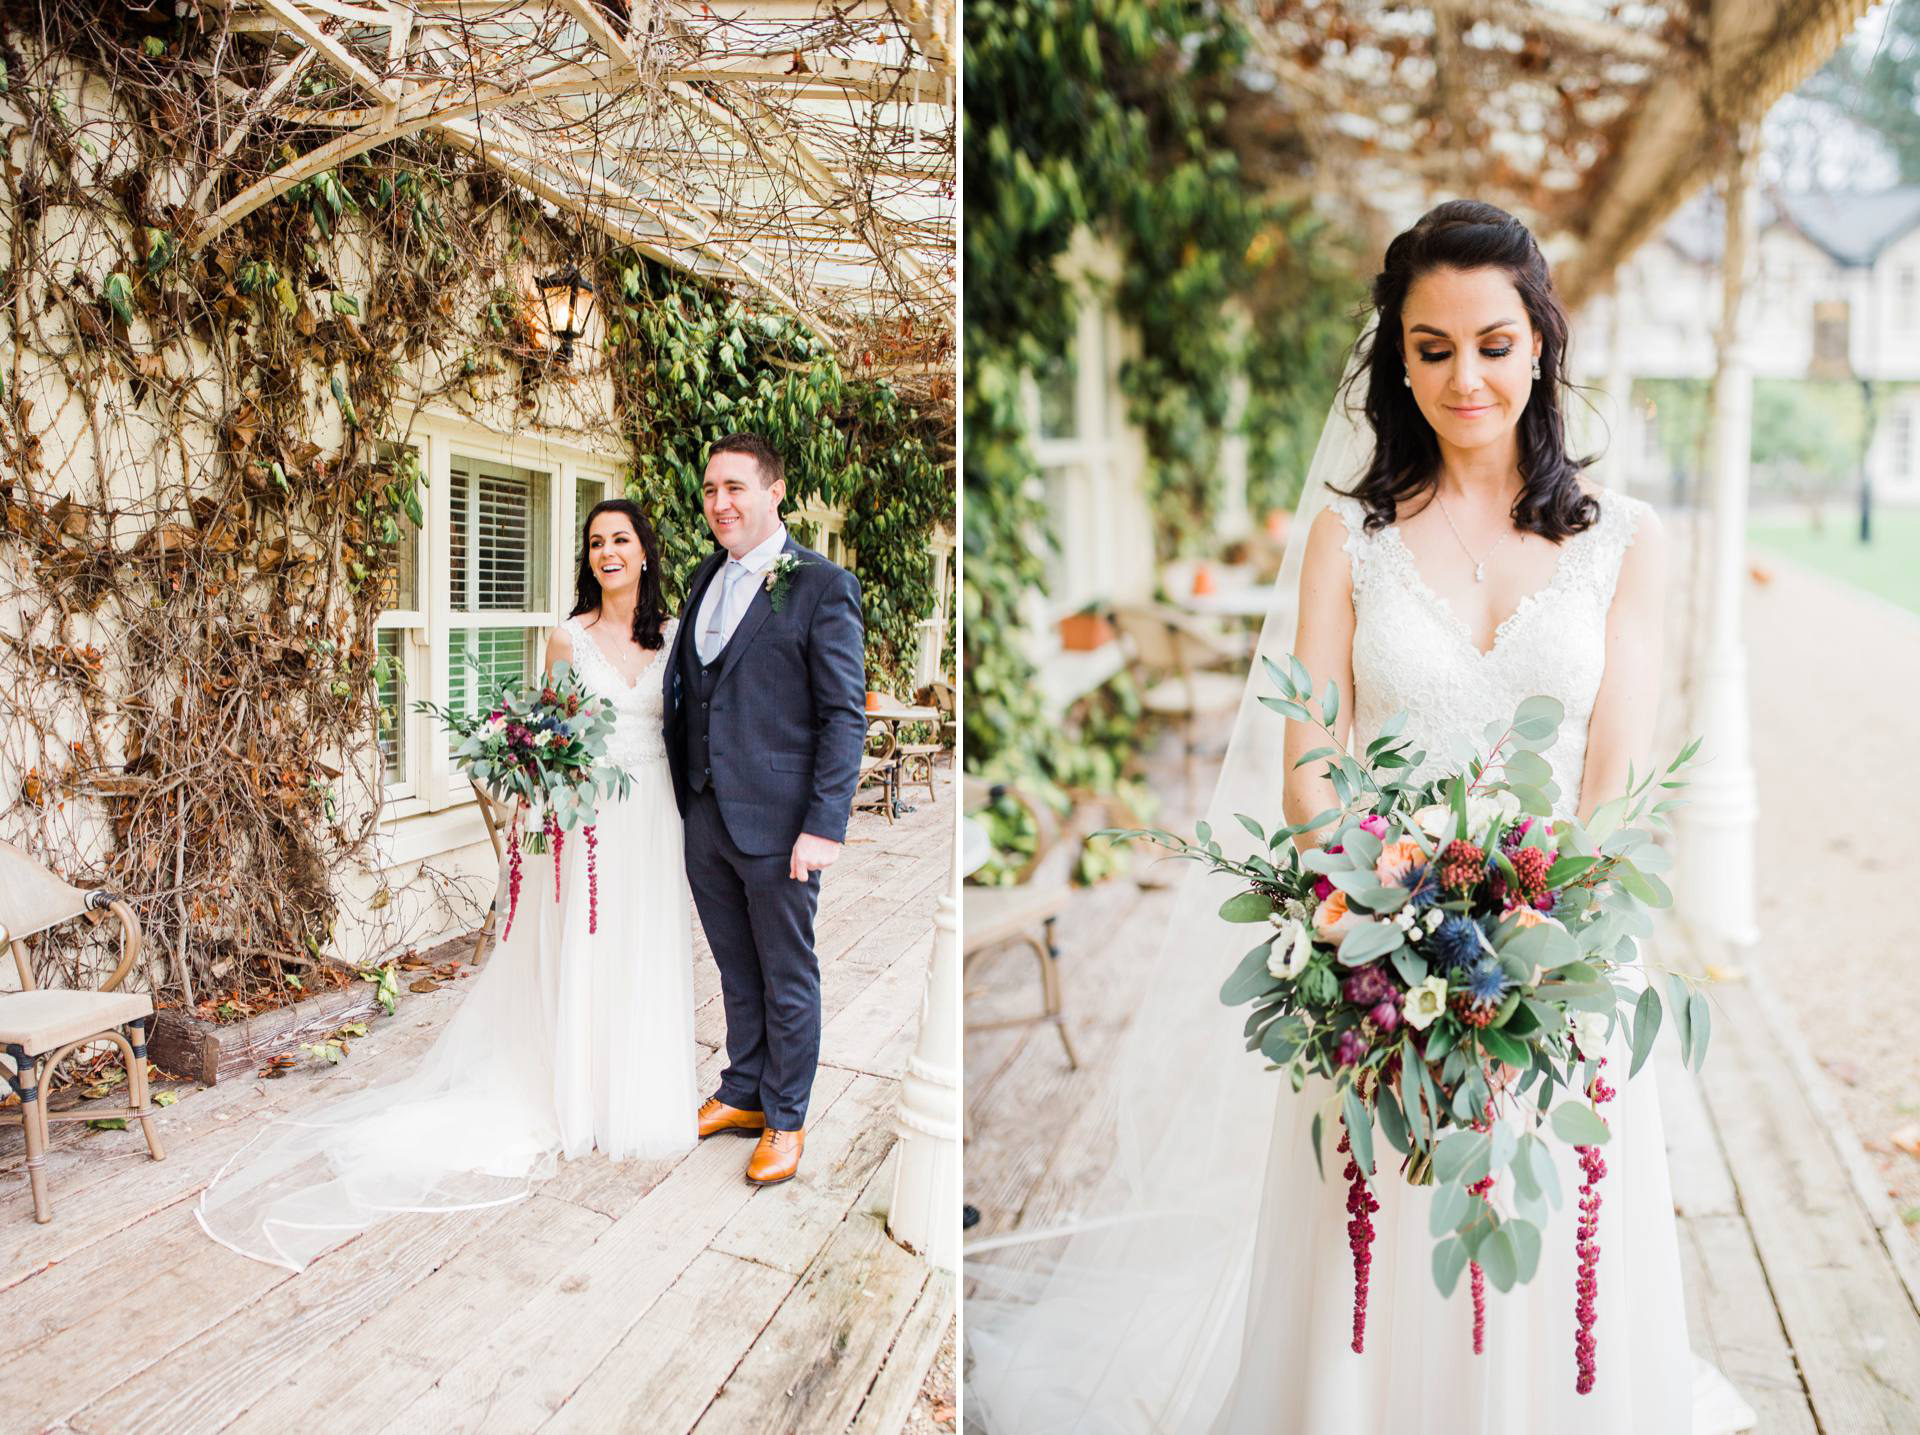 multiple image collage by Kathy Silke photography Dublin wedding photographer